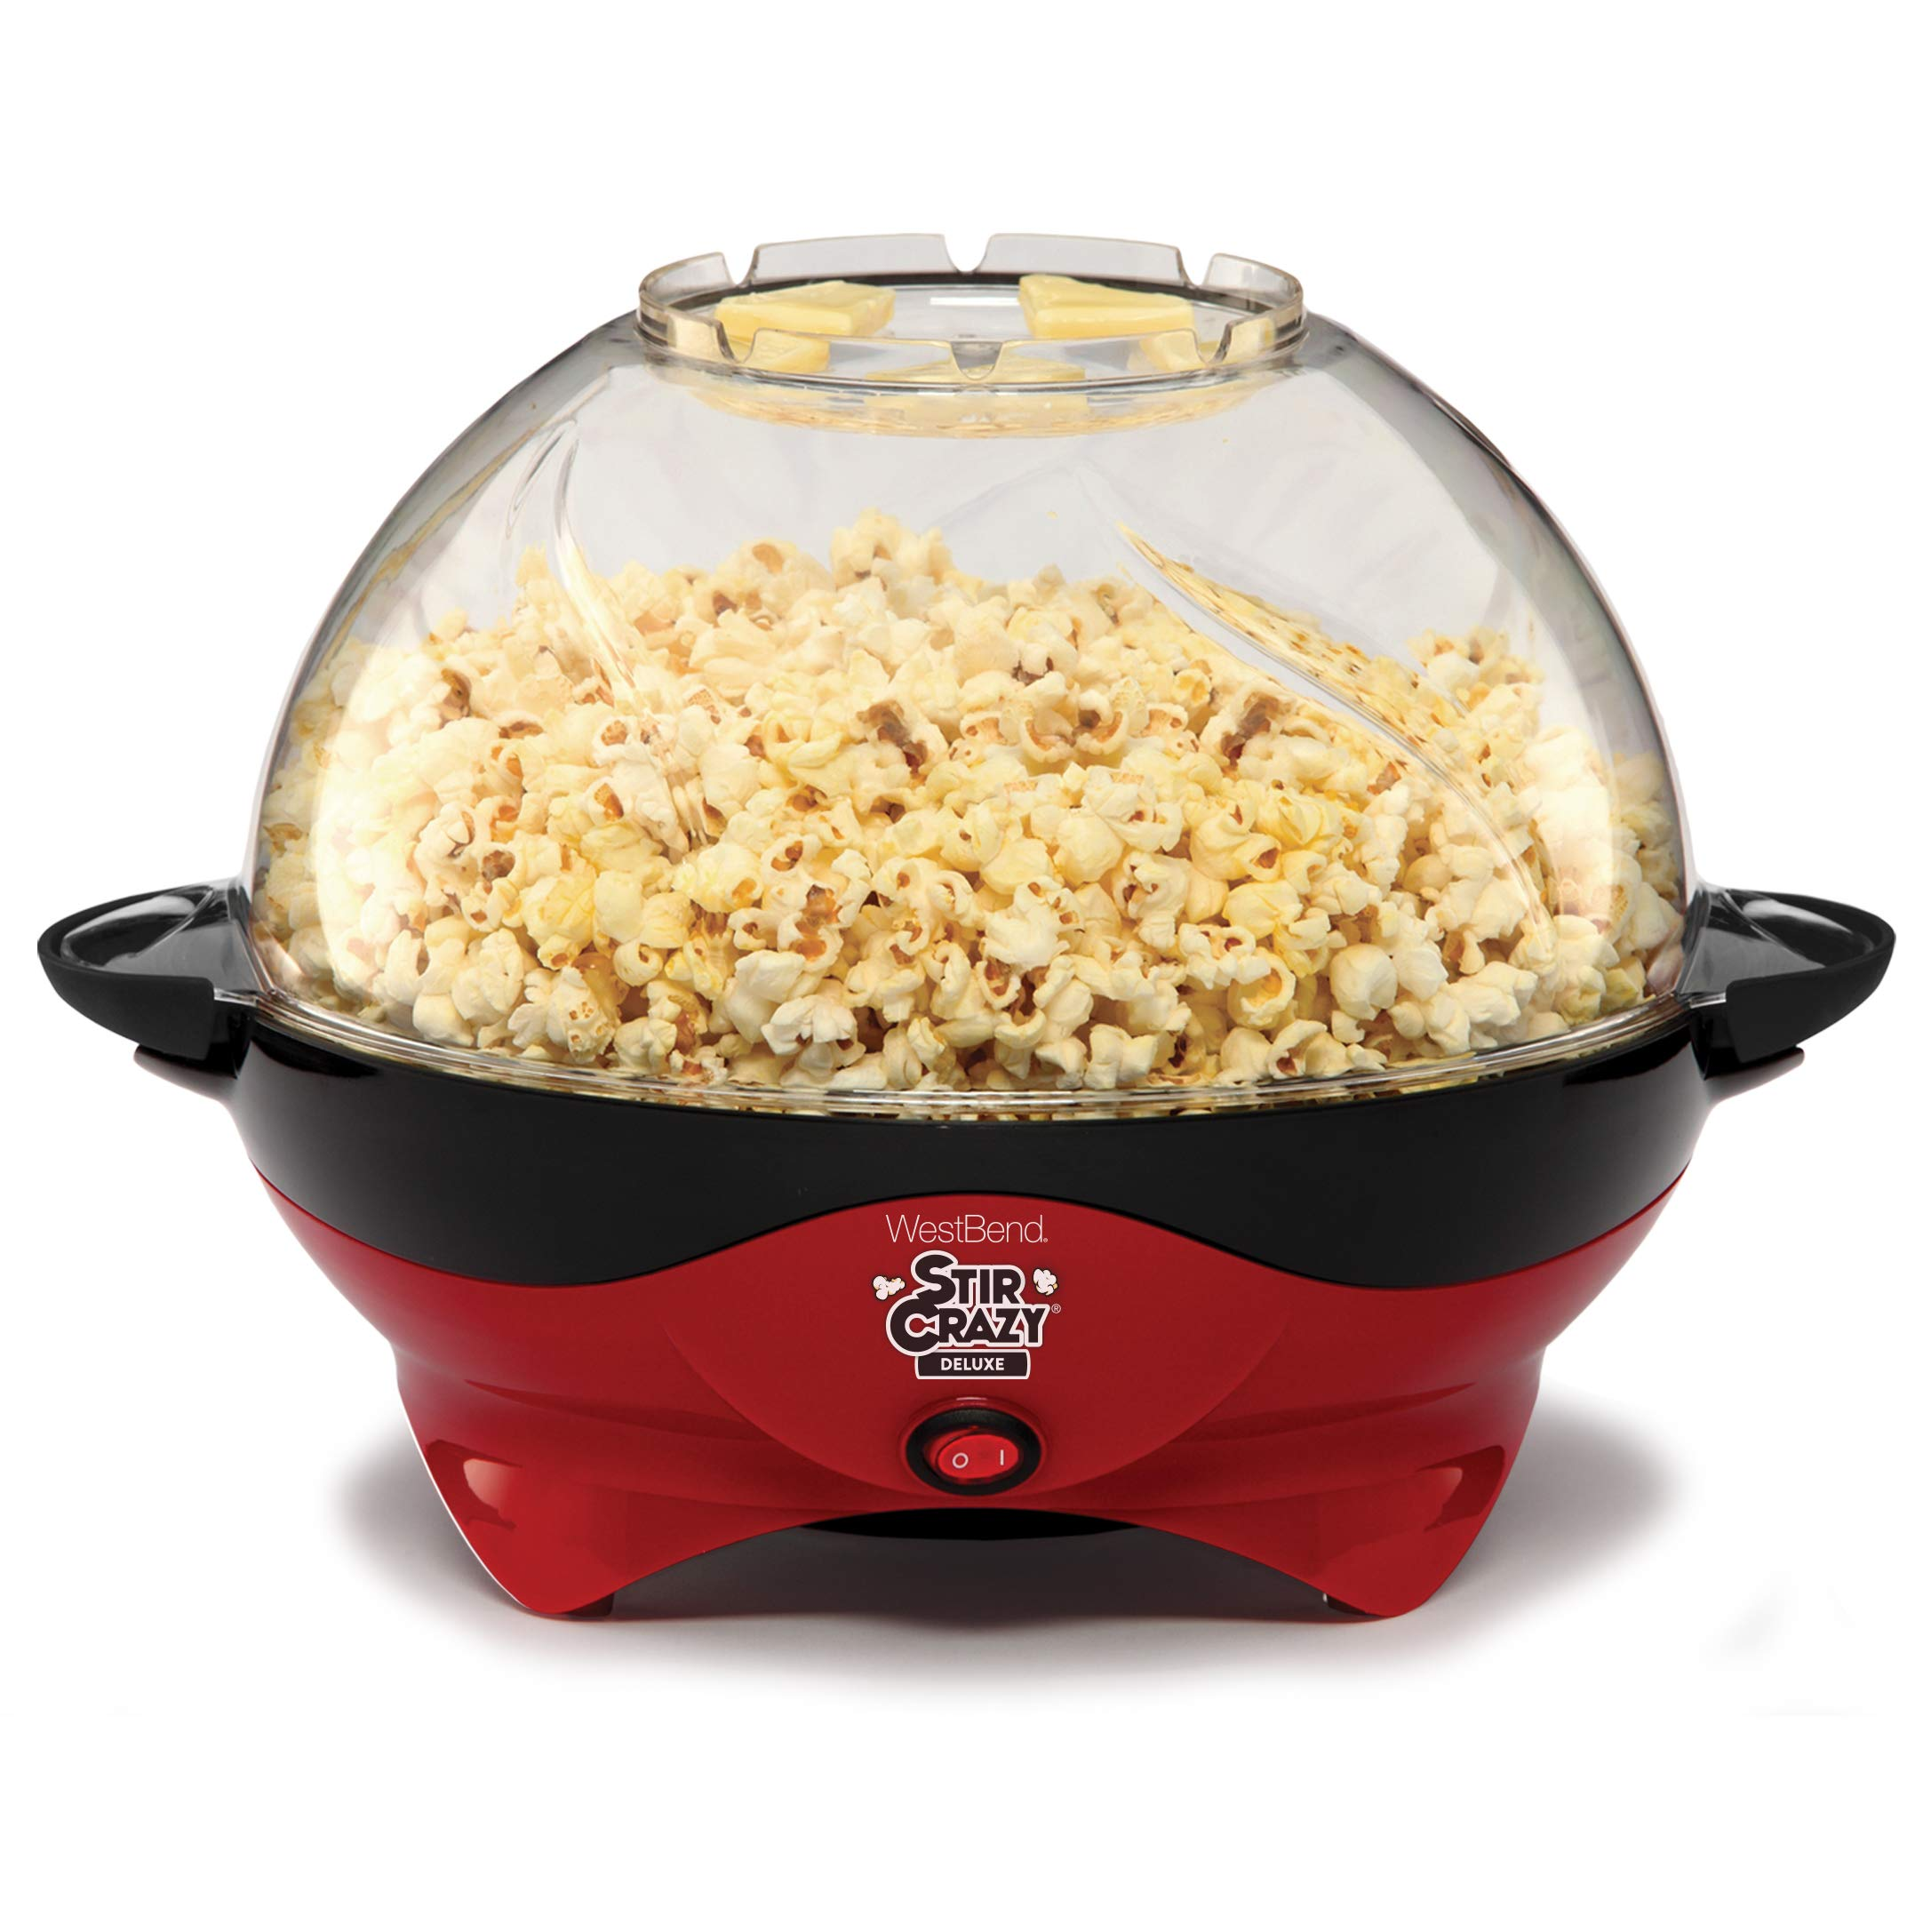 West Bend 8231 Stir Crazy Deluxe Electric Hot Oil Popcorn Popper Machine with Removable Heating Plate for Easy Cleaning Offers Large Lid for Serving Bowl and Convenient Storage, 6-Quarts, Red